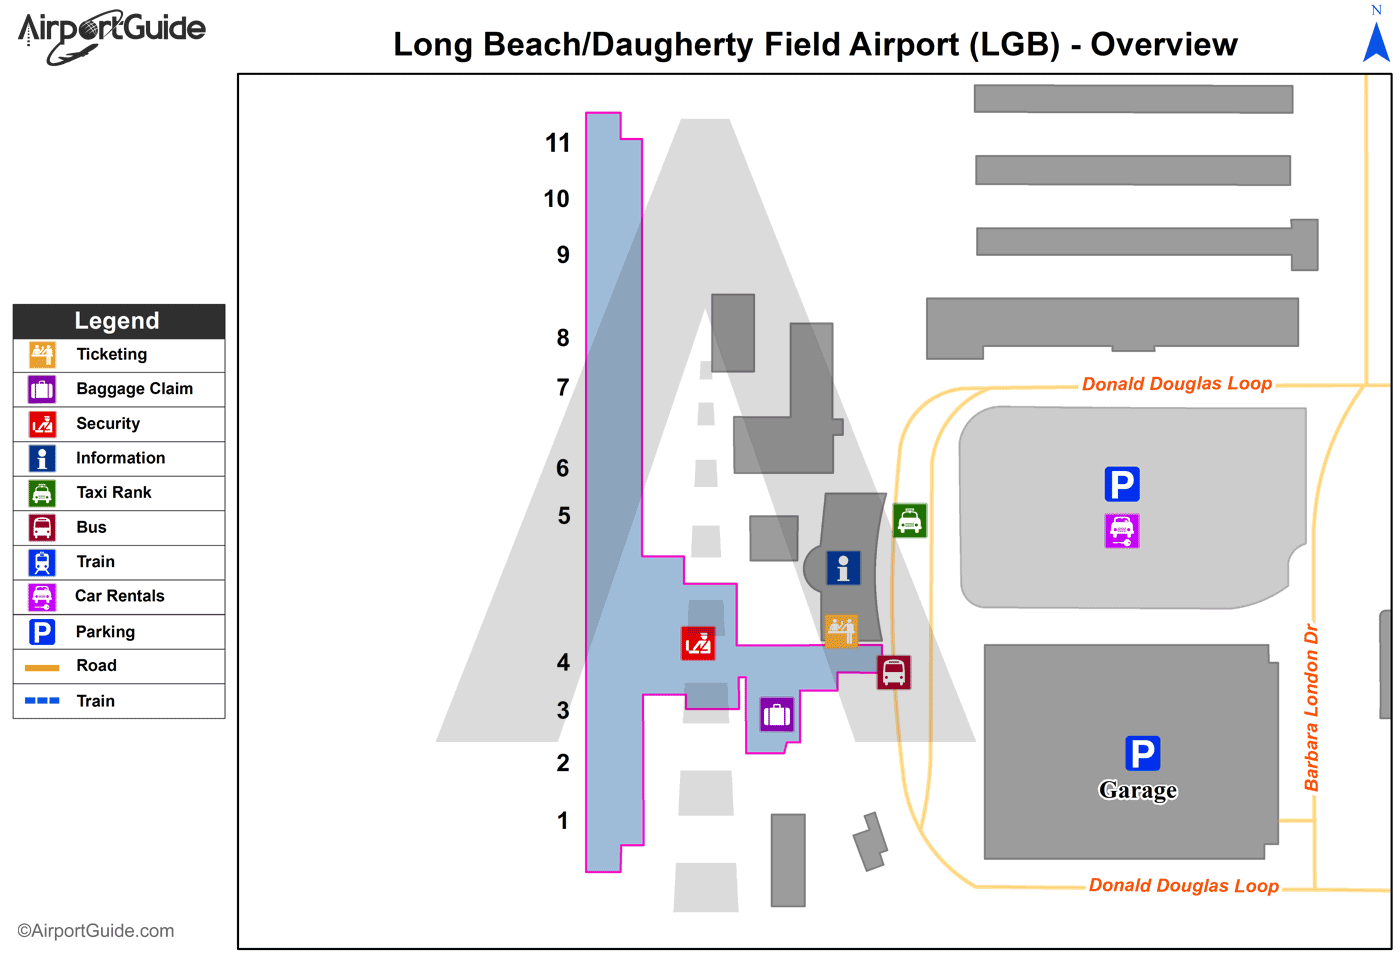 Lgb Airport Map Long Beach   Long Beach /Daugherty Field/ (LGB) Airport Terminal